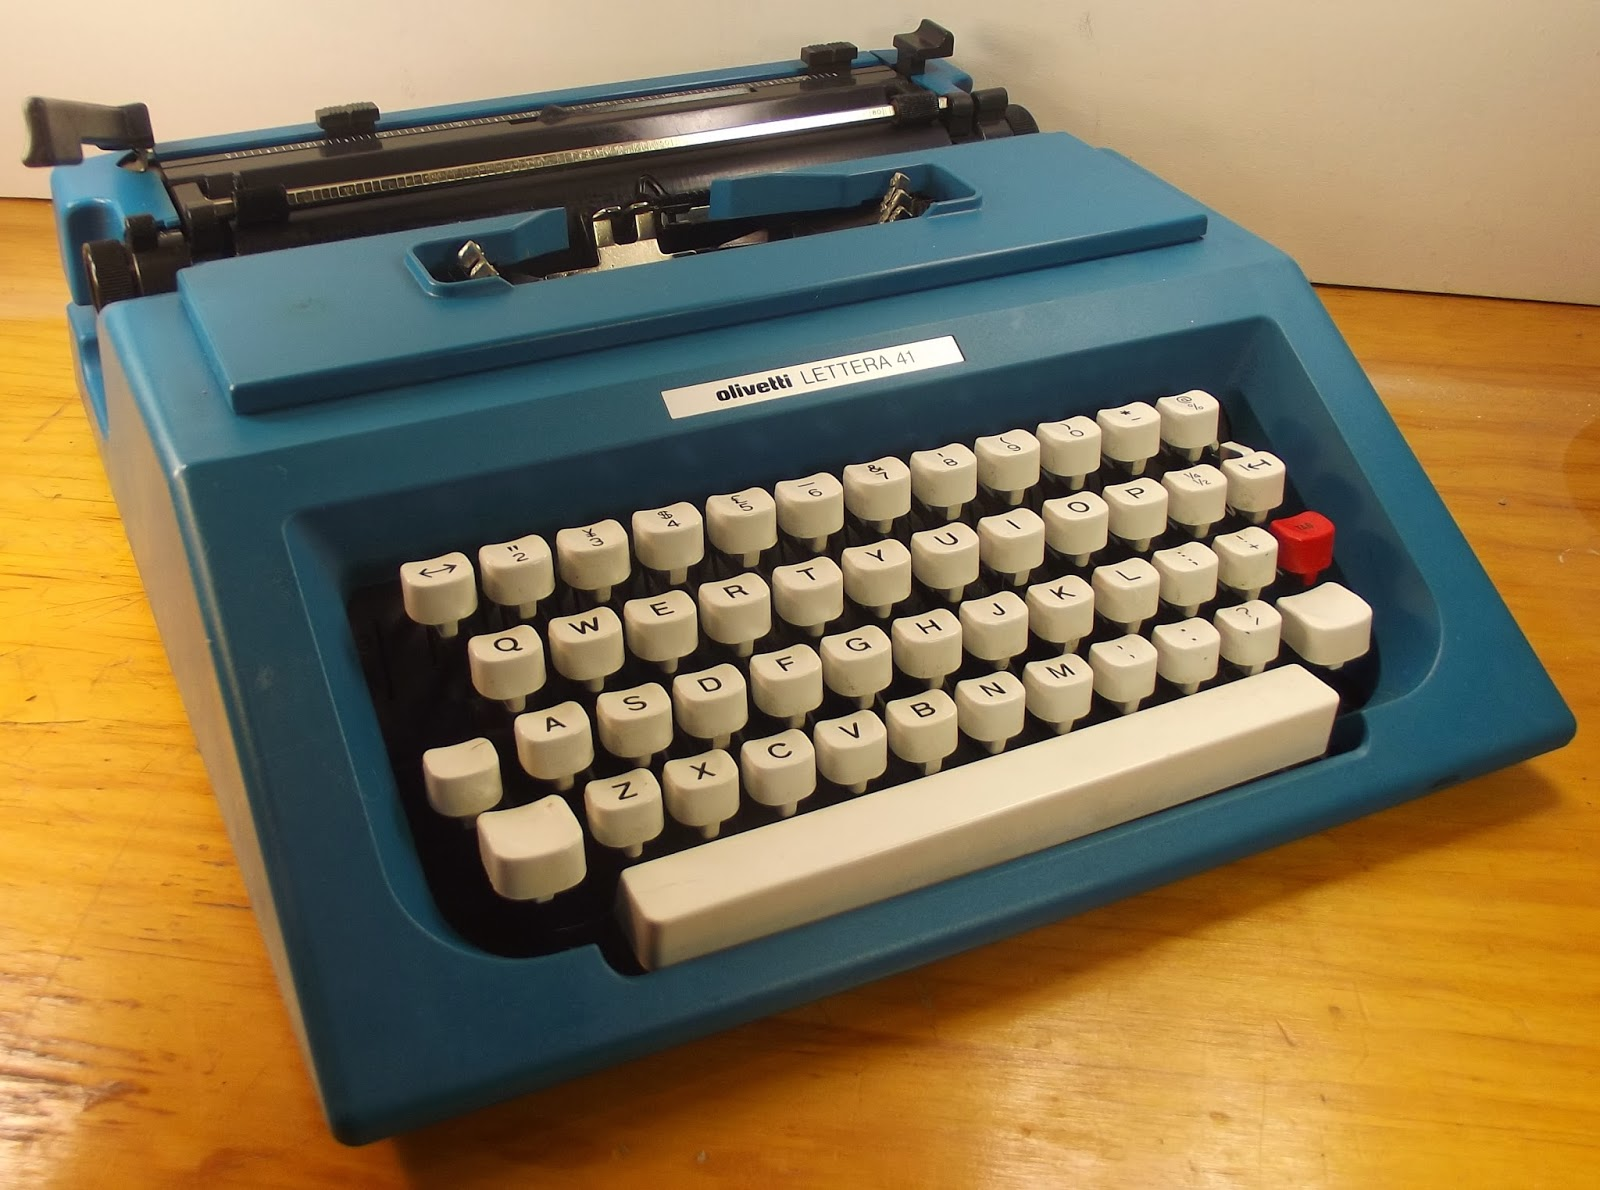 oz.Typewriter: Clip Art: How Olivetti Changed Track with ...